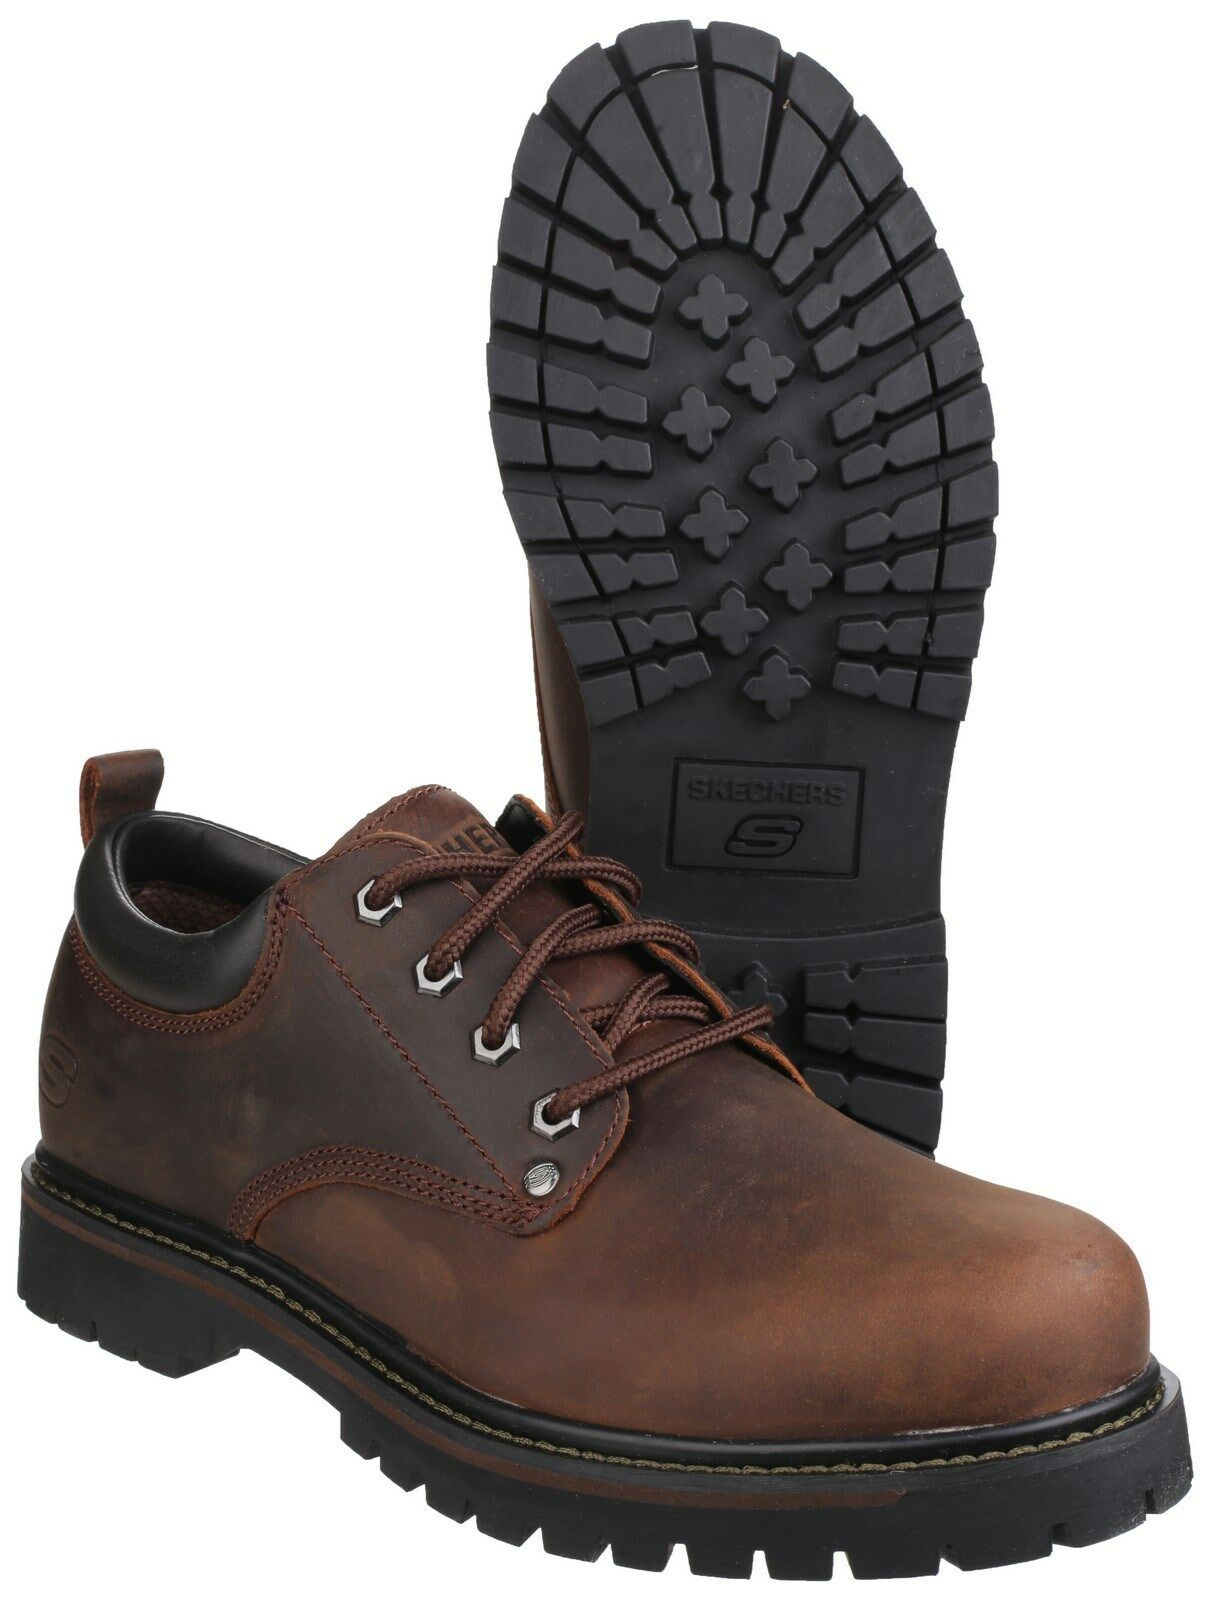 468375c81a9d7 Skechers Tom Cats Mens Casual Oxford Lace Up Work Shoes Boots UK6-12 ...